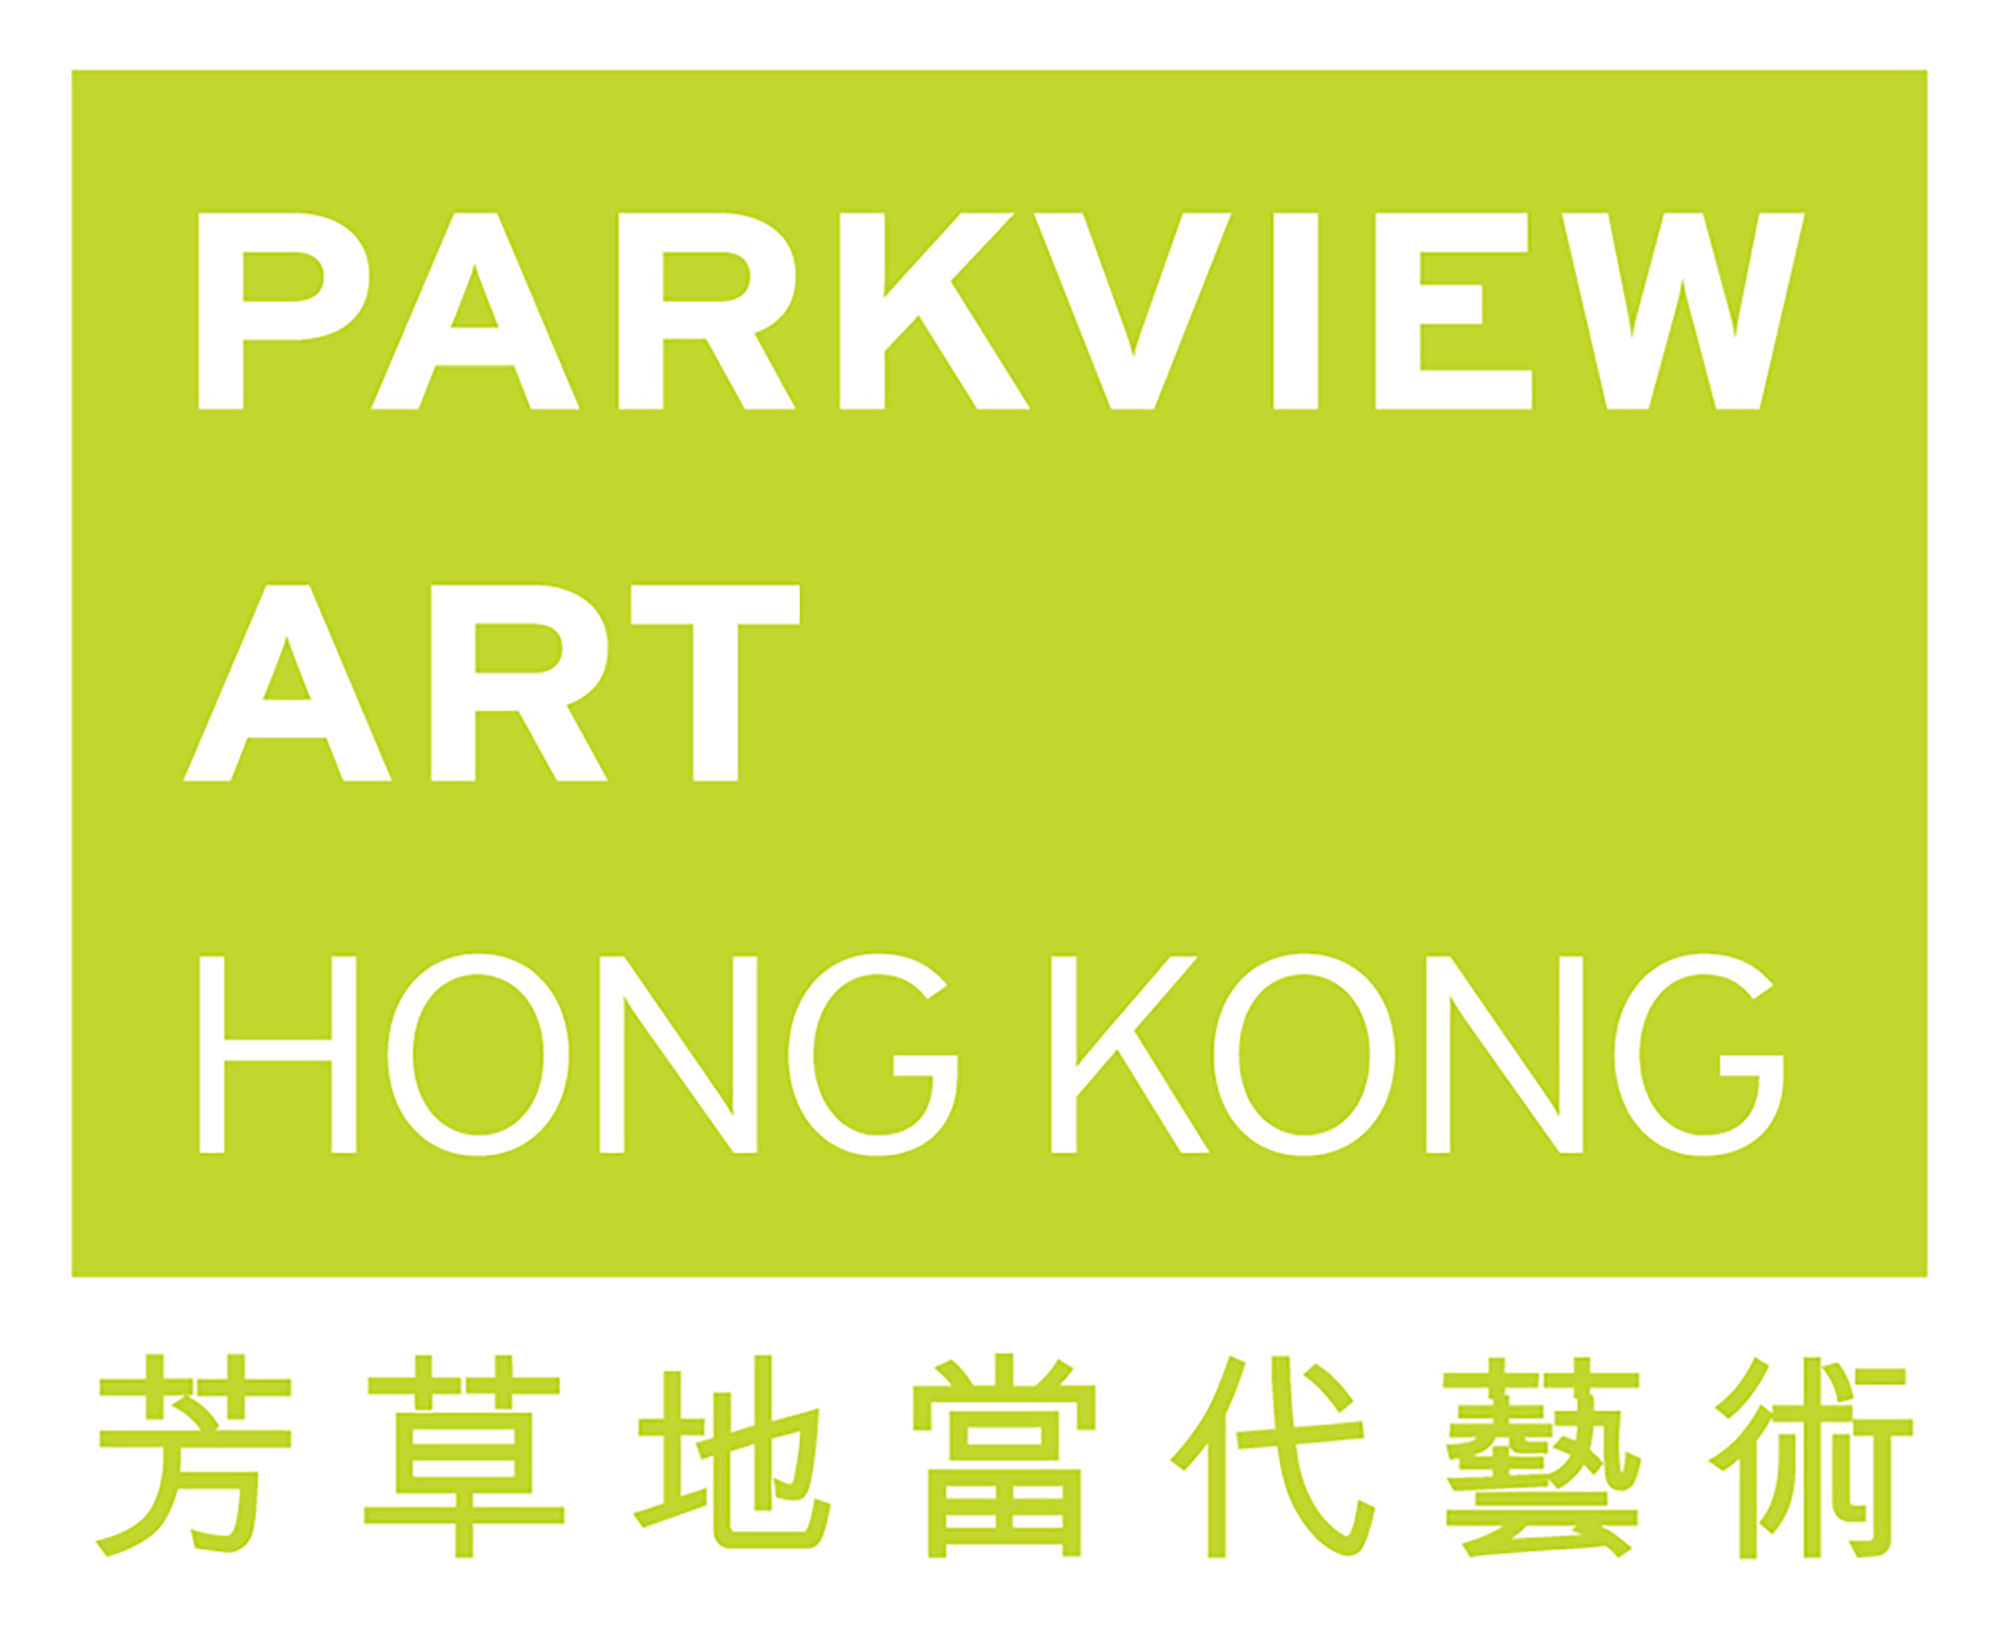 Parkview Art Hong-Kong